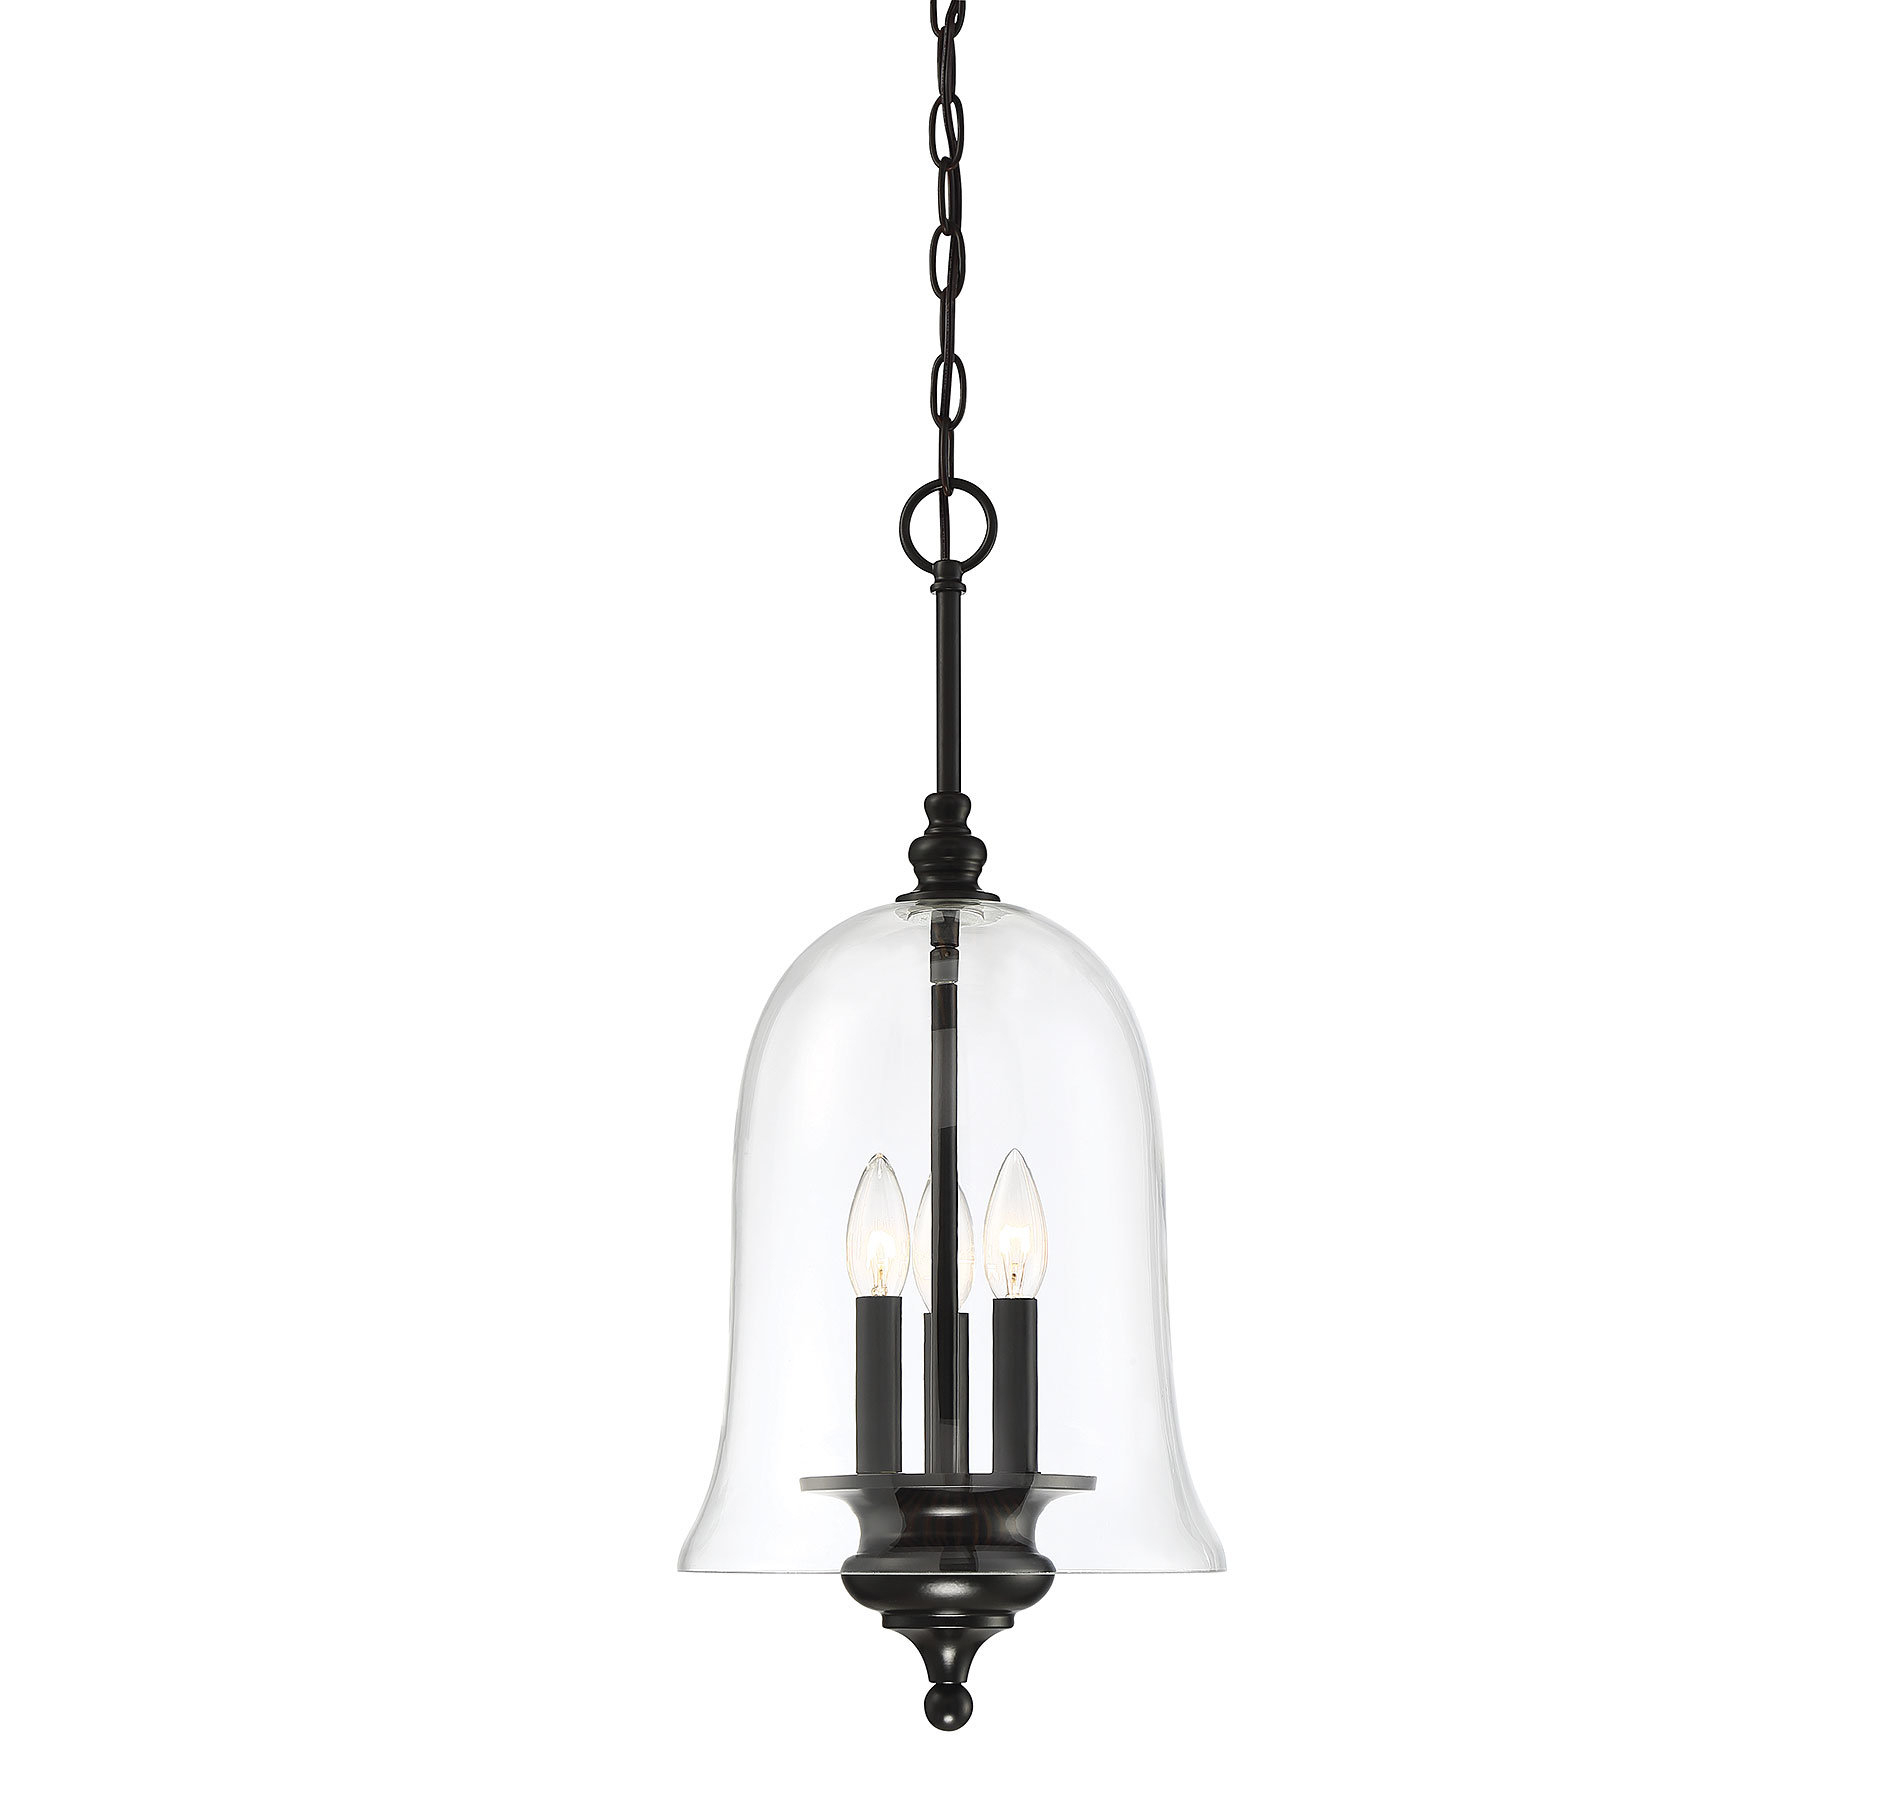 Youngberg 3 Light Single Bell Pendant With Regard To Yarger 1 Light Single Bell Pendants (Photo 11 of 30)